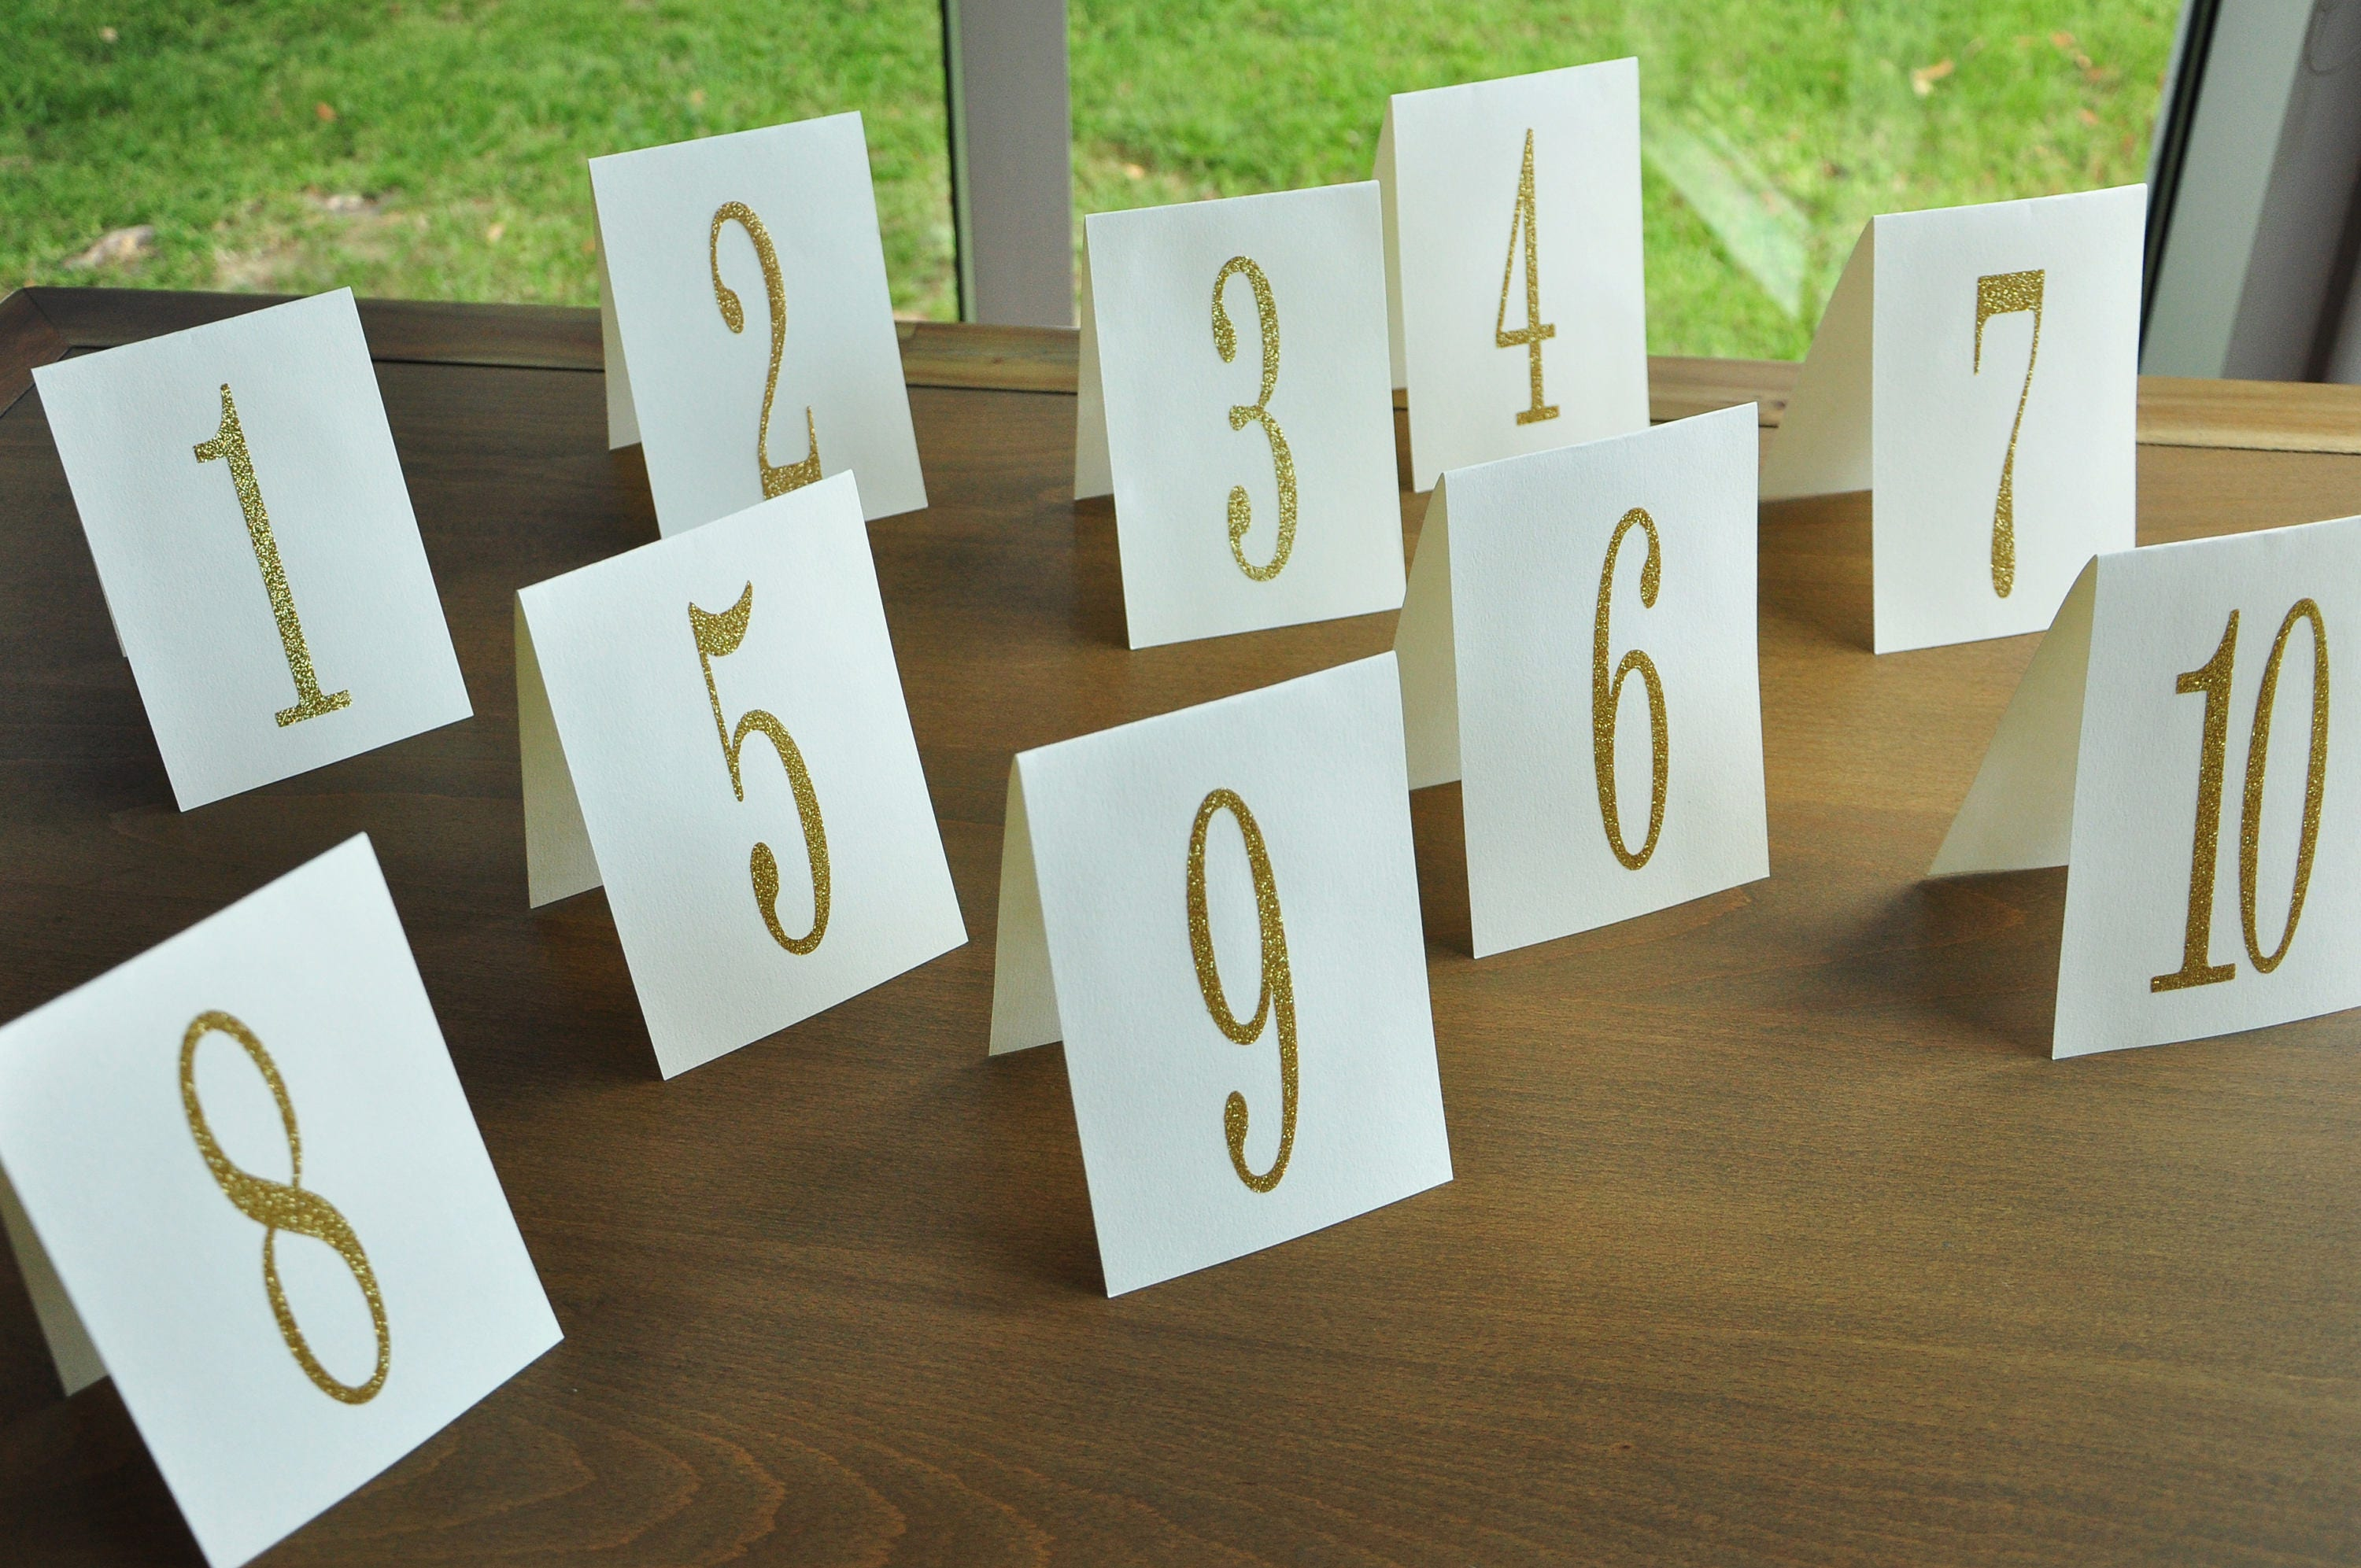 Table Number Tents. Gold Table Numbers 1-10. Hand Crafted in 3- & Table Number Tents. Gold Table Numbers 1-10. Hand Crafted in 3-5 ...